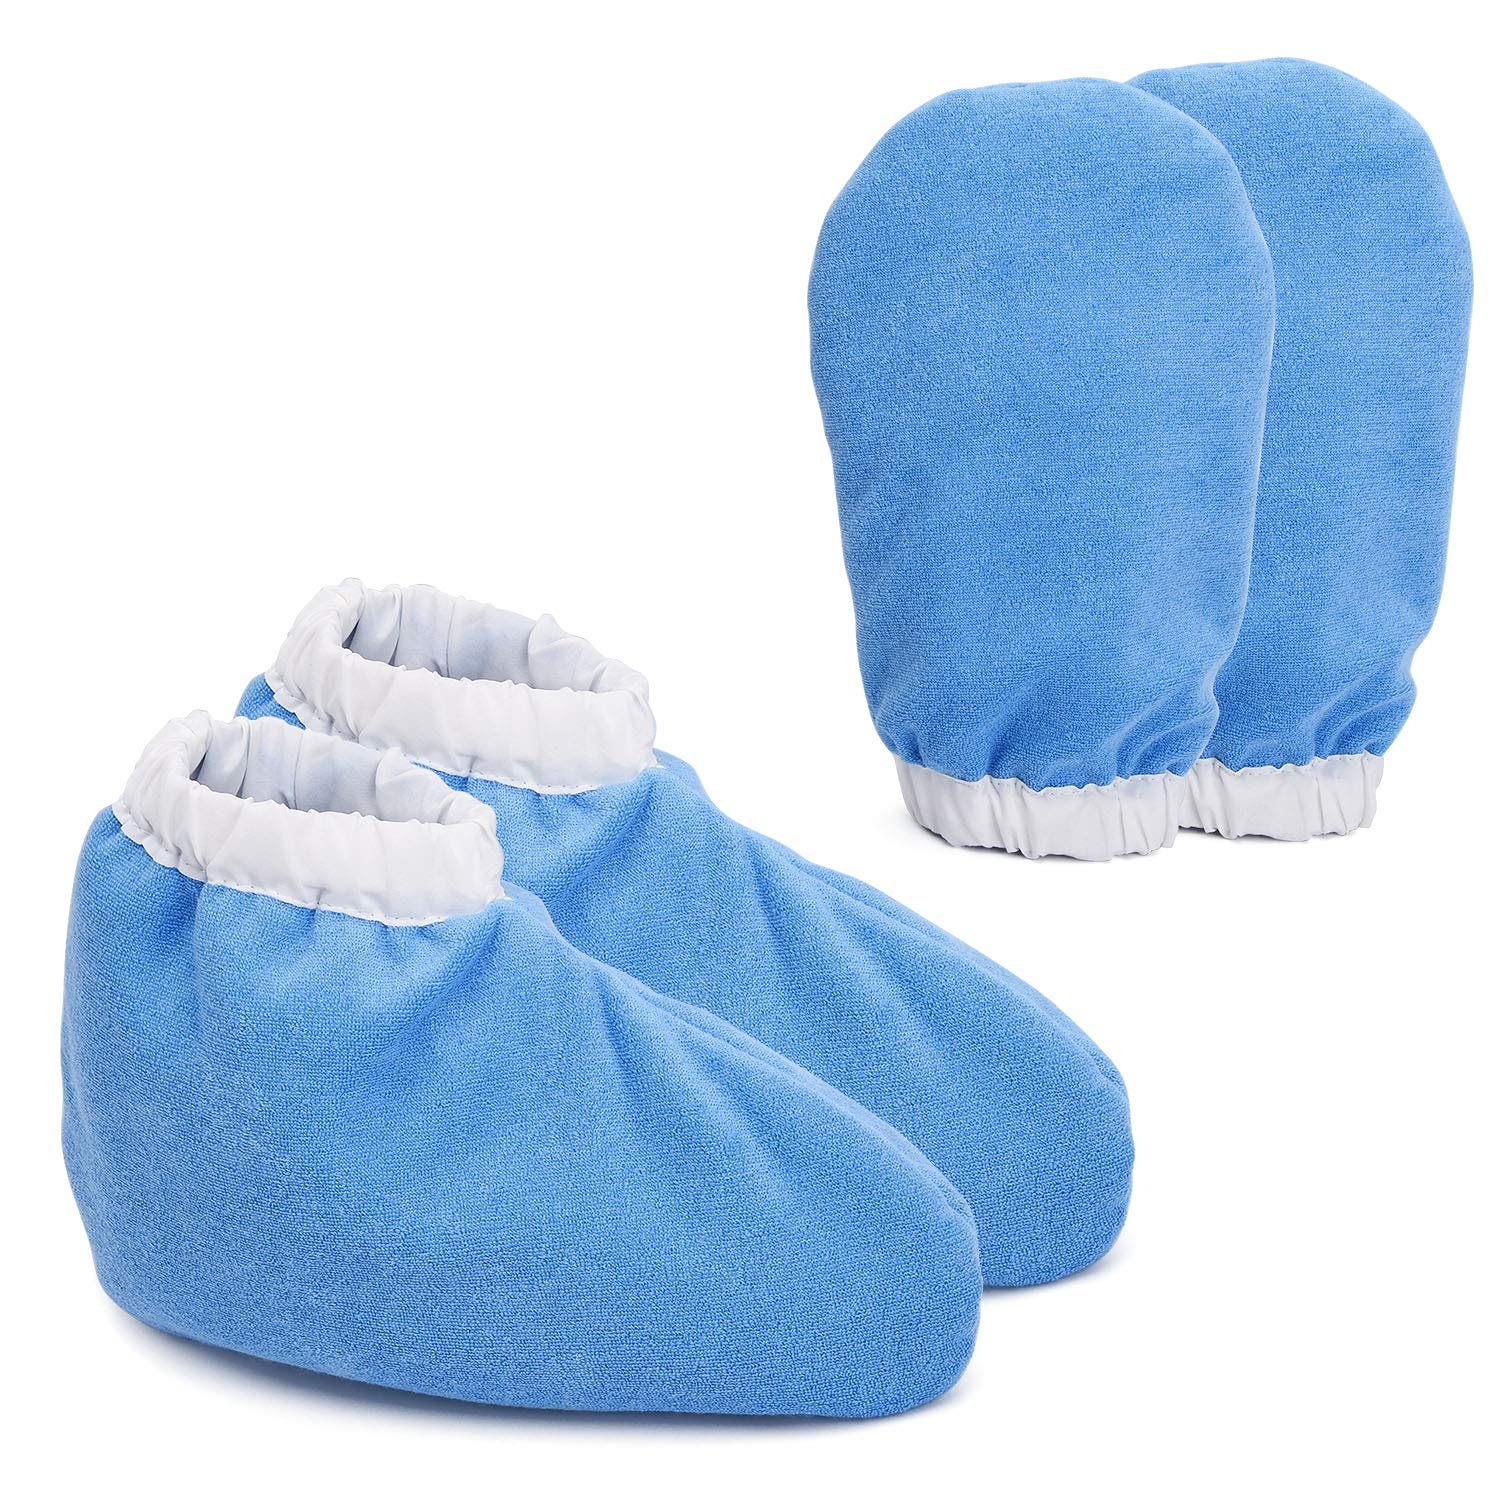 Paraffin Wax Bath Terry Cloth Gloves & Booties, Hand Care Treatment Mitts Spa Feet Cover, Thick Heat Therapy Insulated Soft Cotton Mittens Work Kit for Women - Blue Noverlife